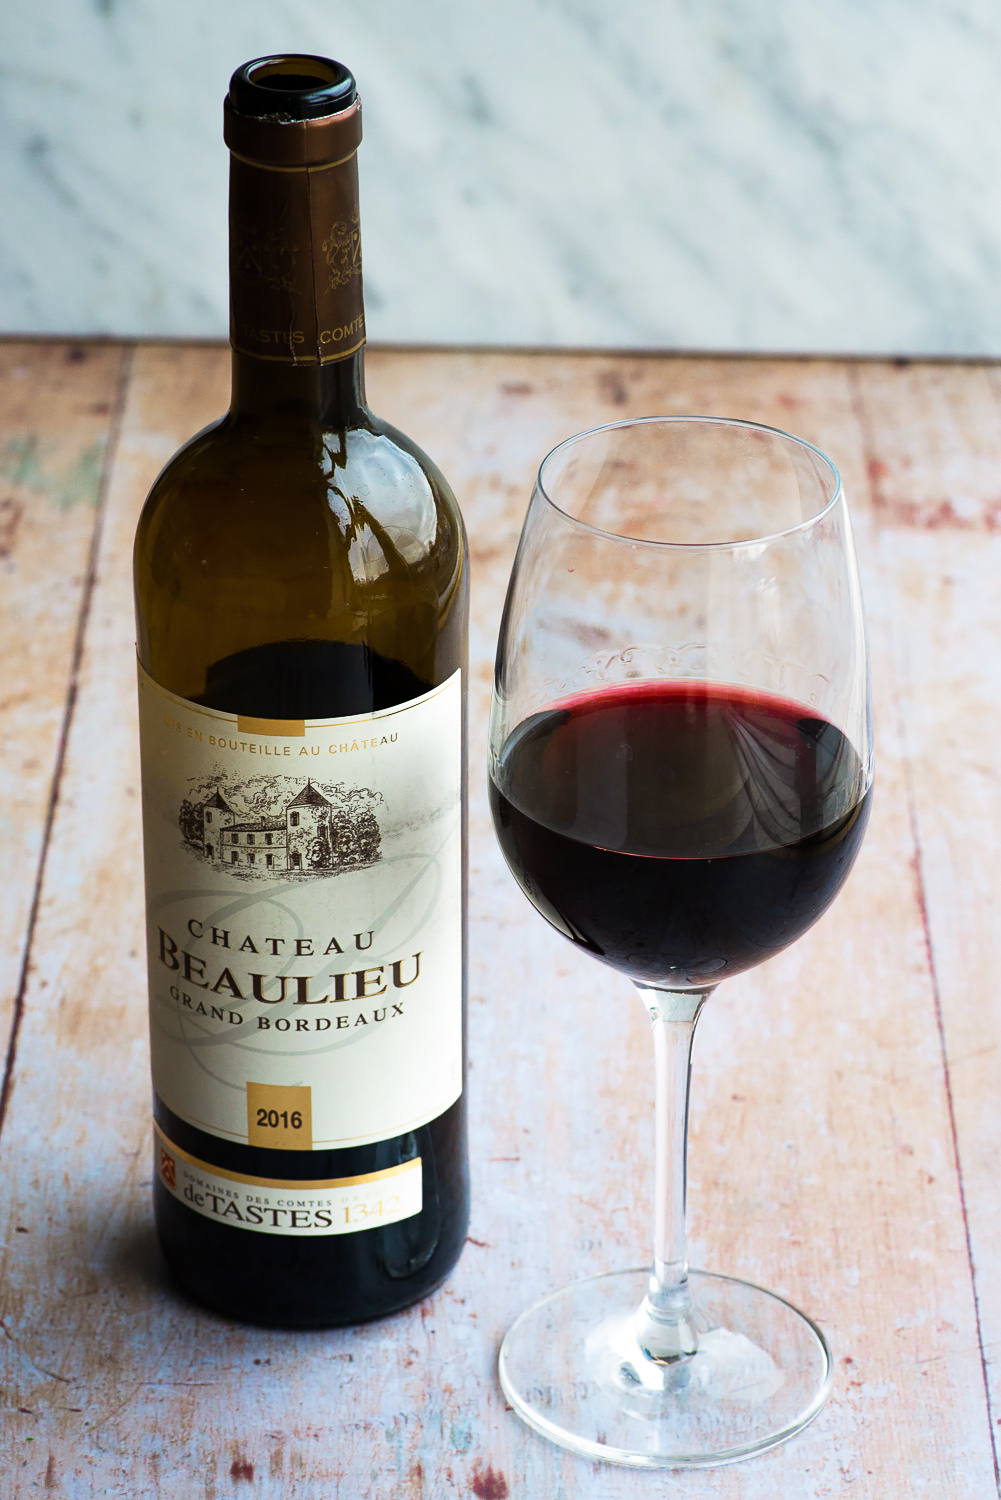 Chateau Beaulieu Grand Bordeaux wine | Millesima, a Bordeaux-based wine merchant with one of the most comprehensive selections of fines wines from everywhere in the world.